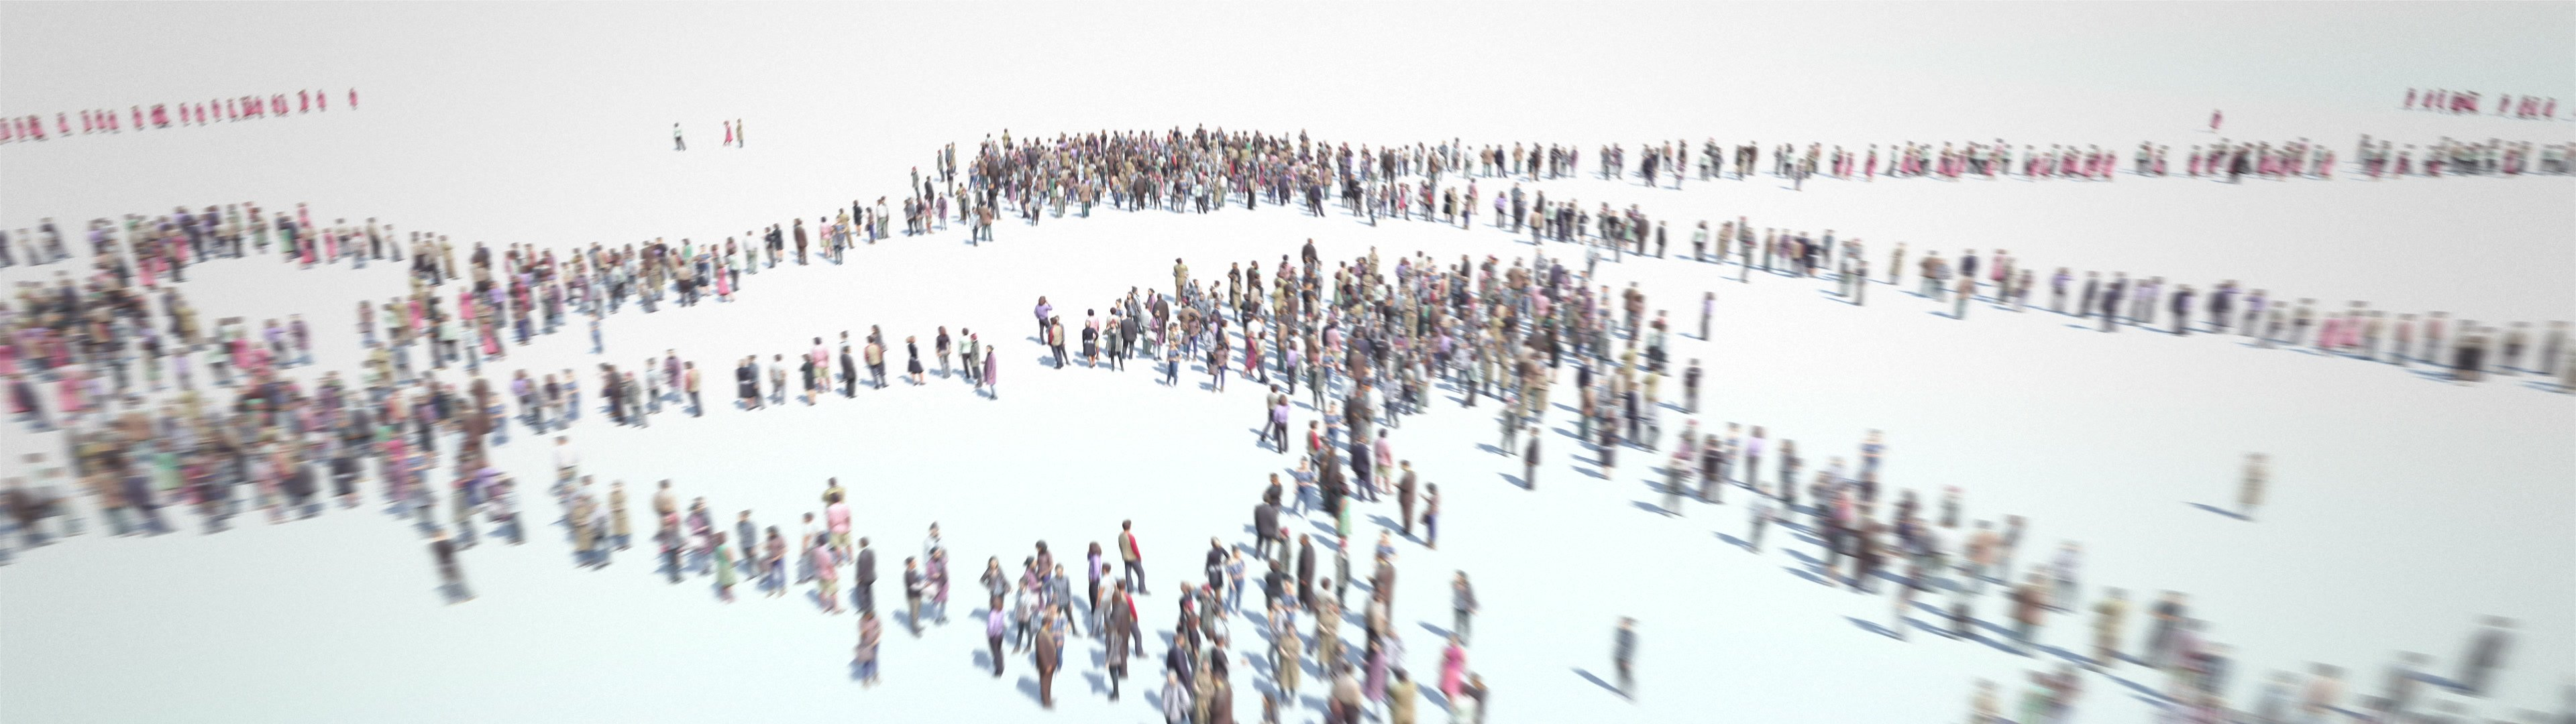 Social Network. Groups and connections between people. | Social Network. Thousands of people formed groups and connections. Camera zoom out. 4k. - ID:24456